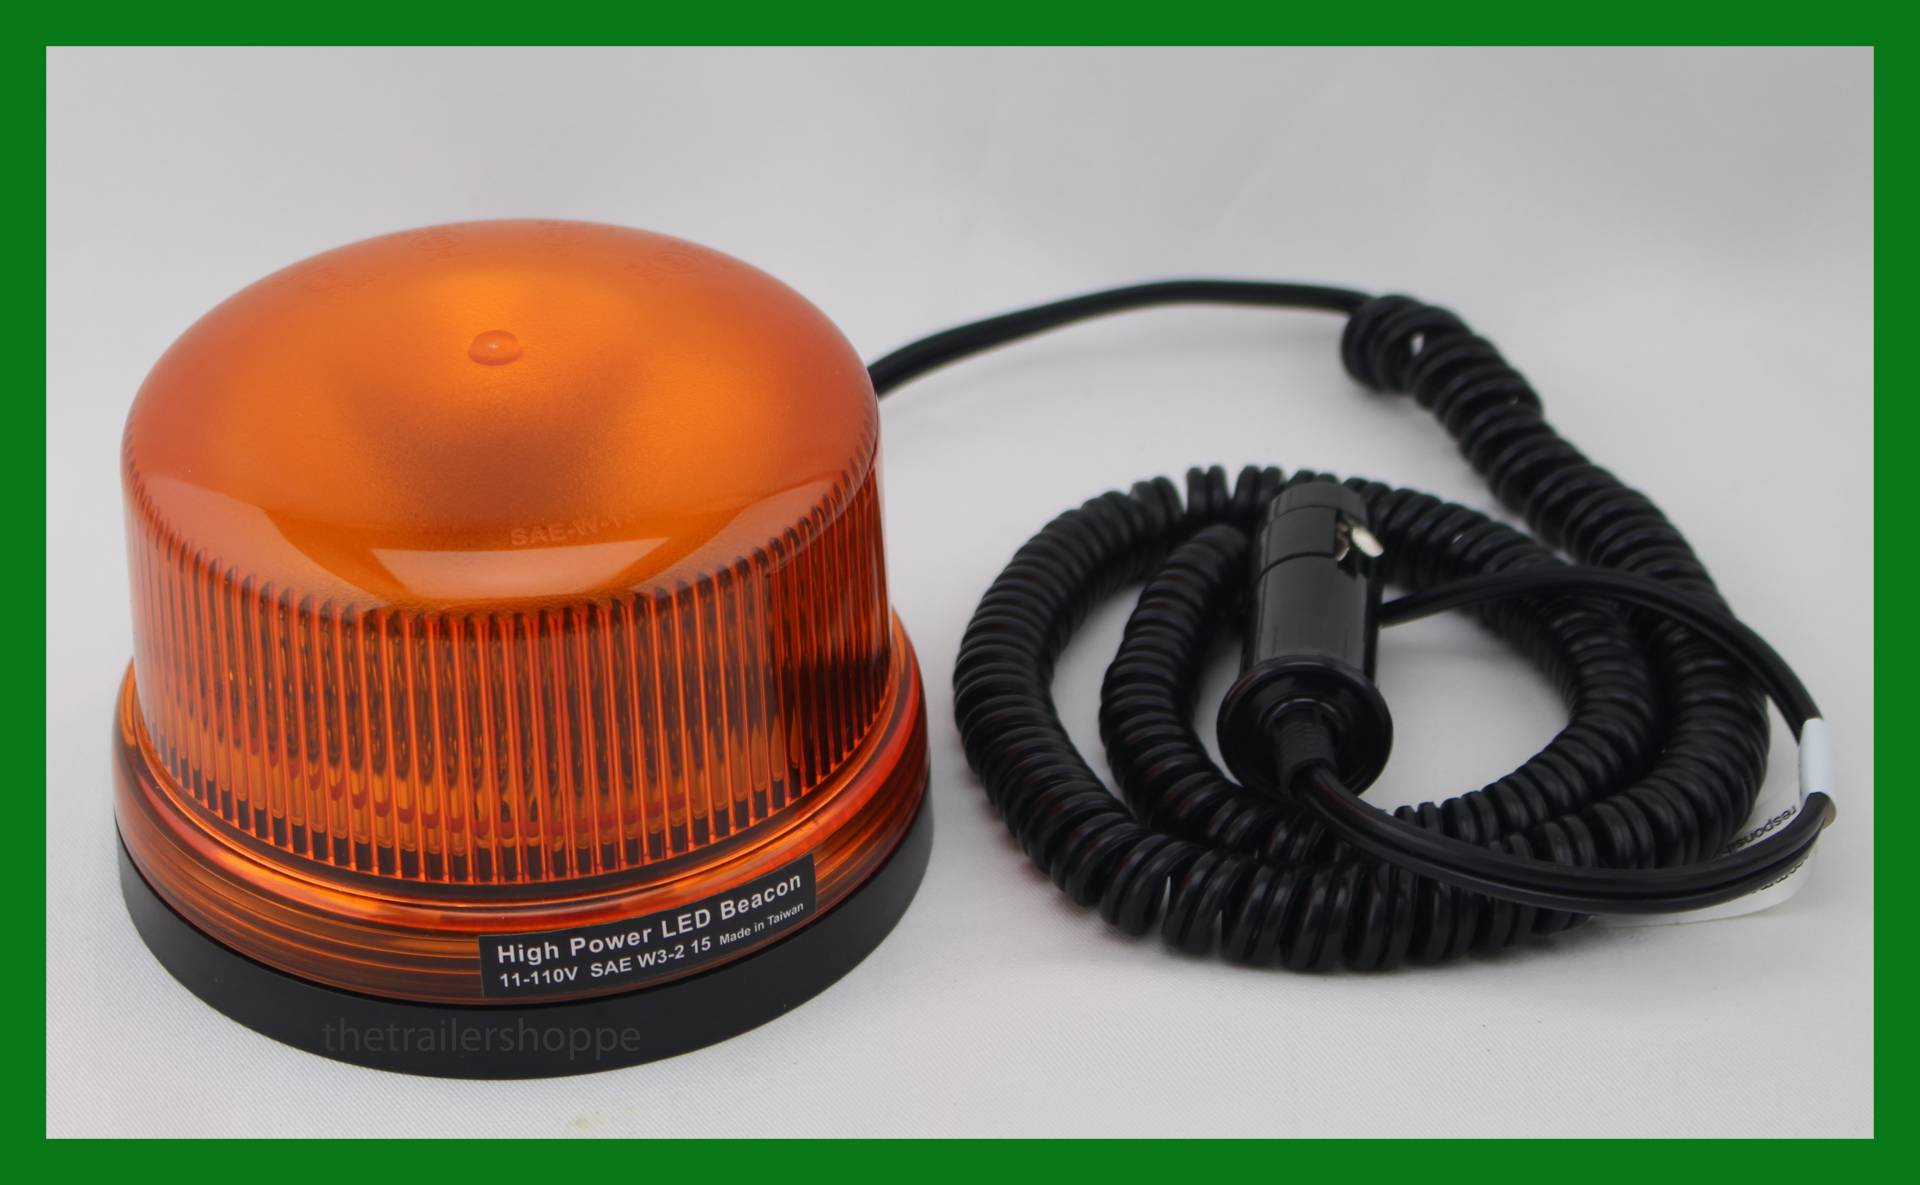 Strobe Light 4 5 8 Round Dome 3 Led The Trailer Shoppe Power